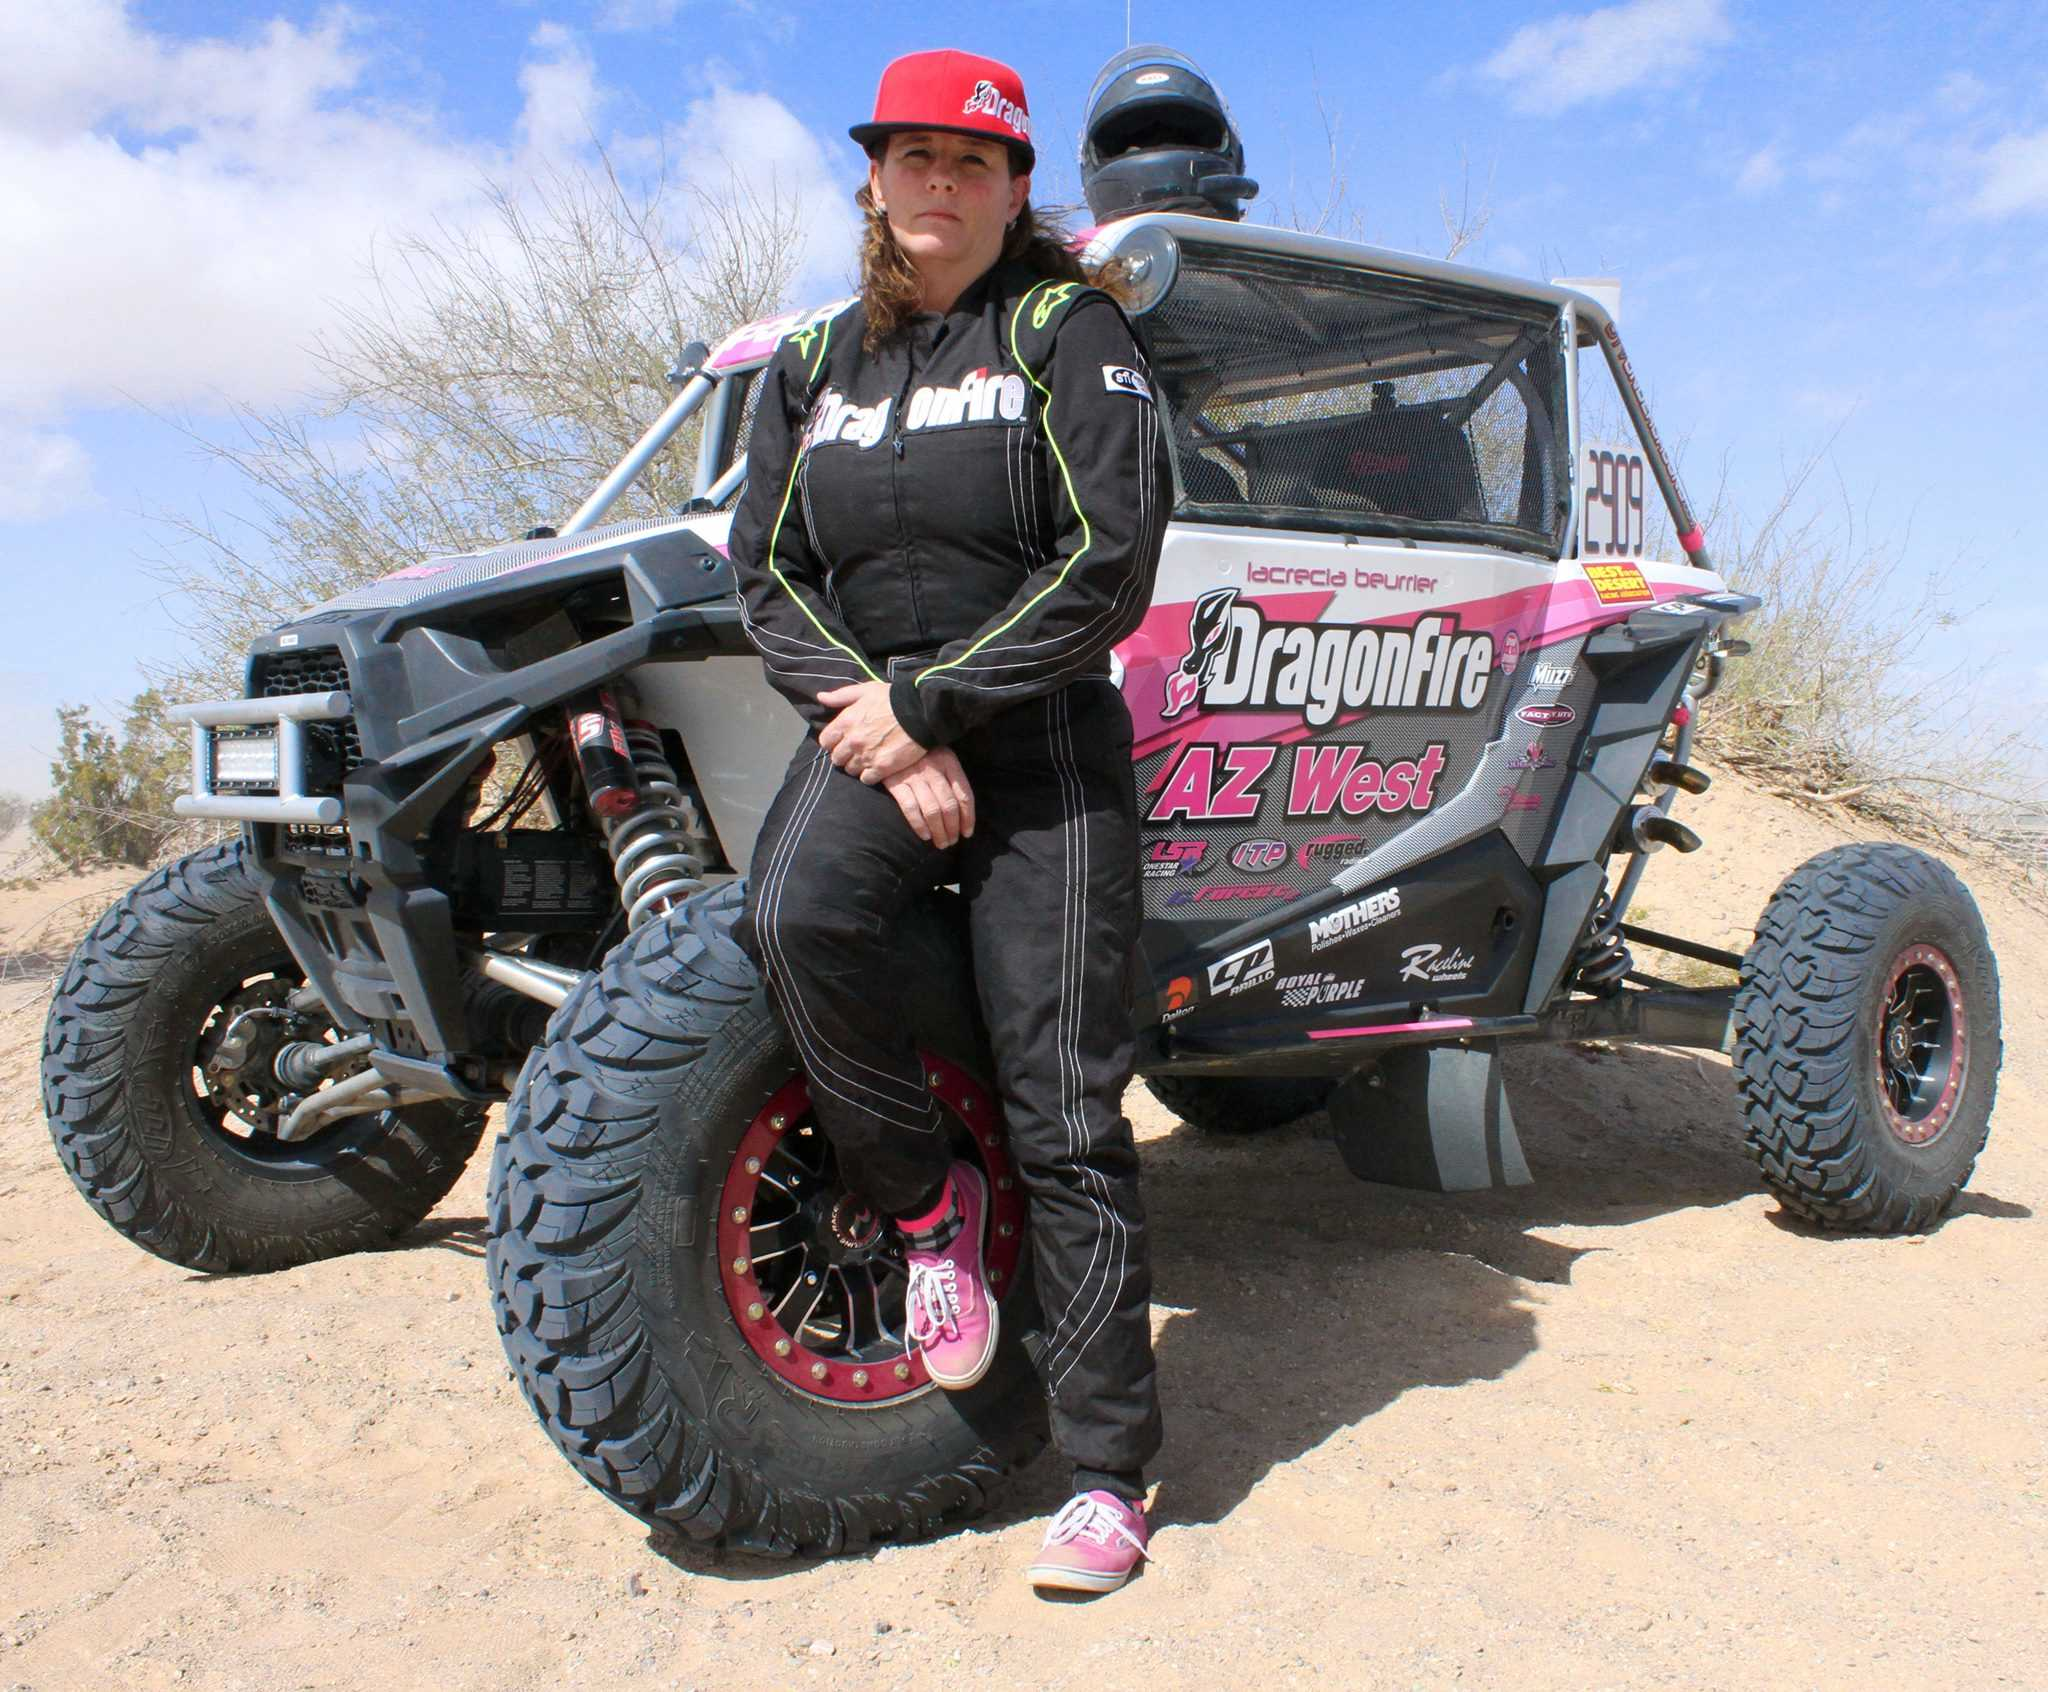 DragonFire Racing Sponsored BITD Pro Unlimited Champion, Lacrecia Beurrier: Winning At Life